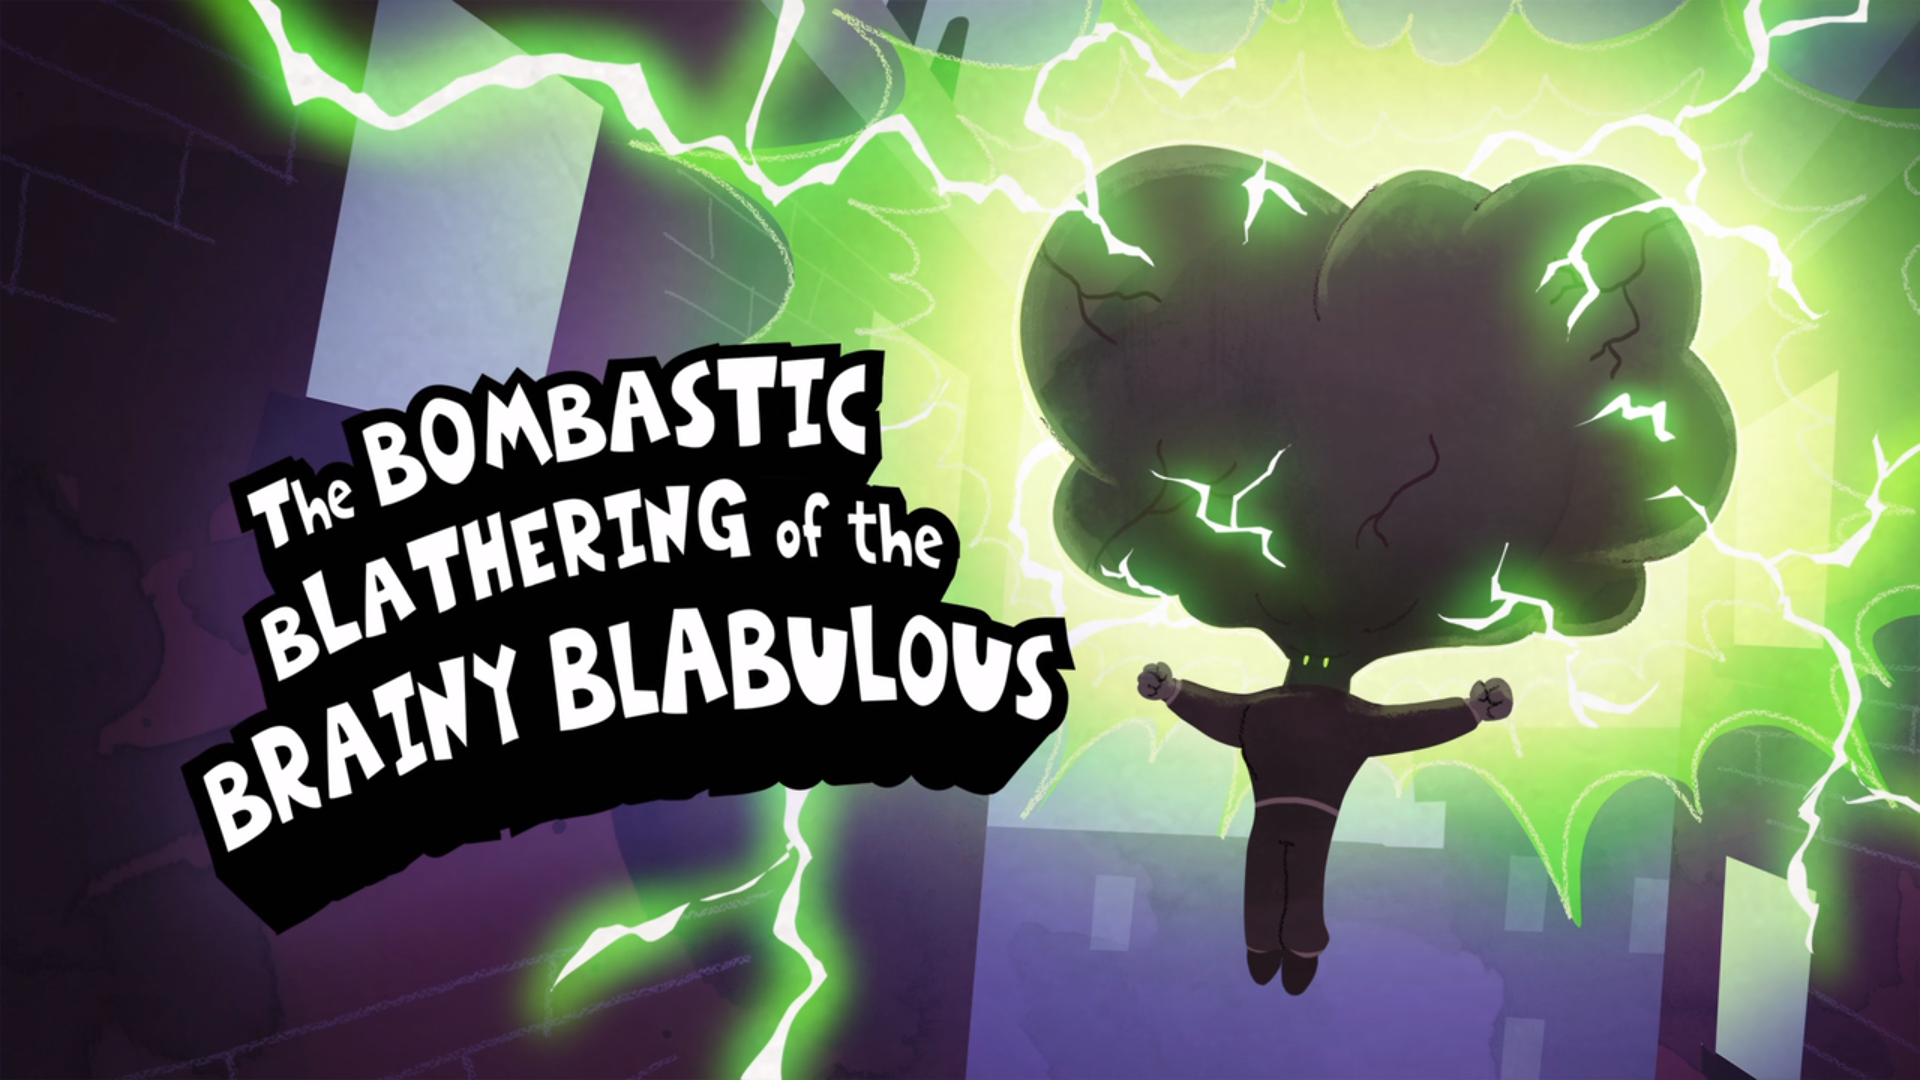 The Bombastic Blathering of Brainy Blabulous